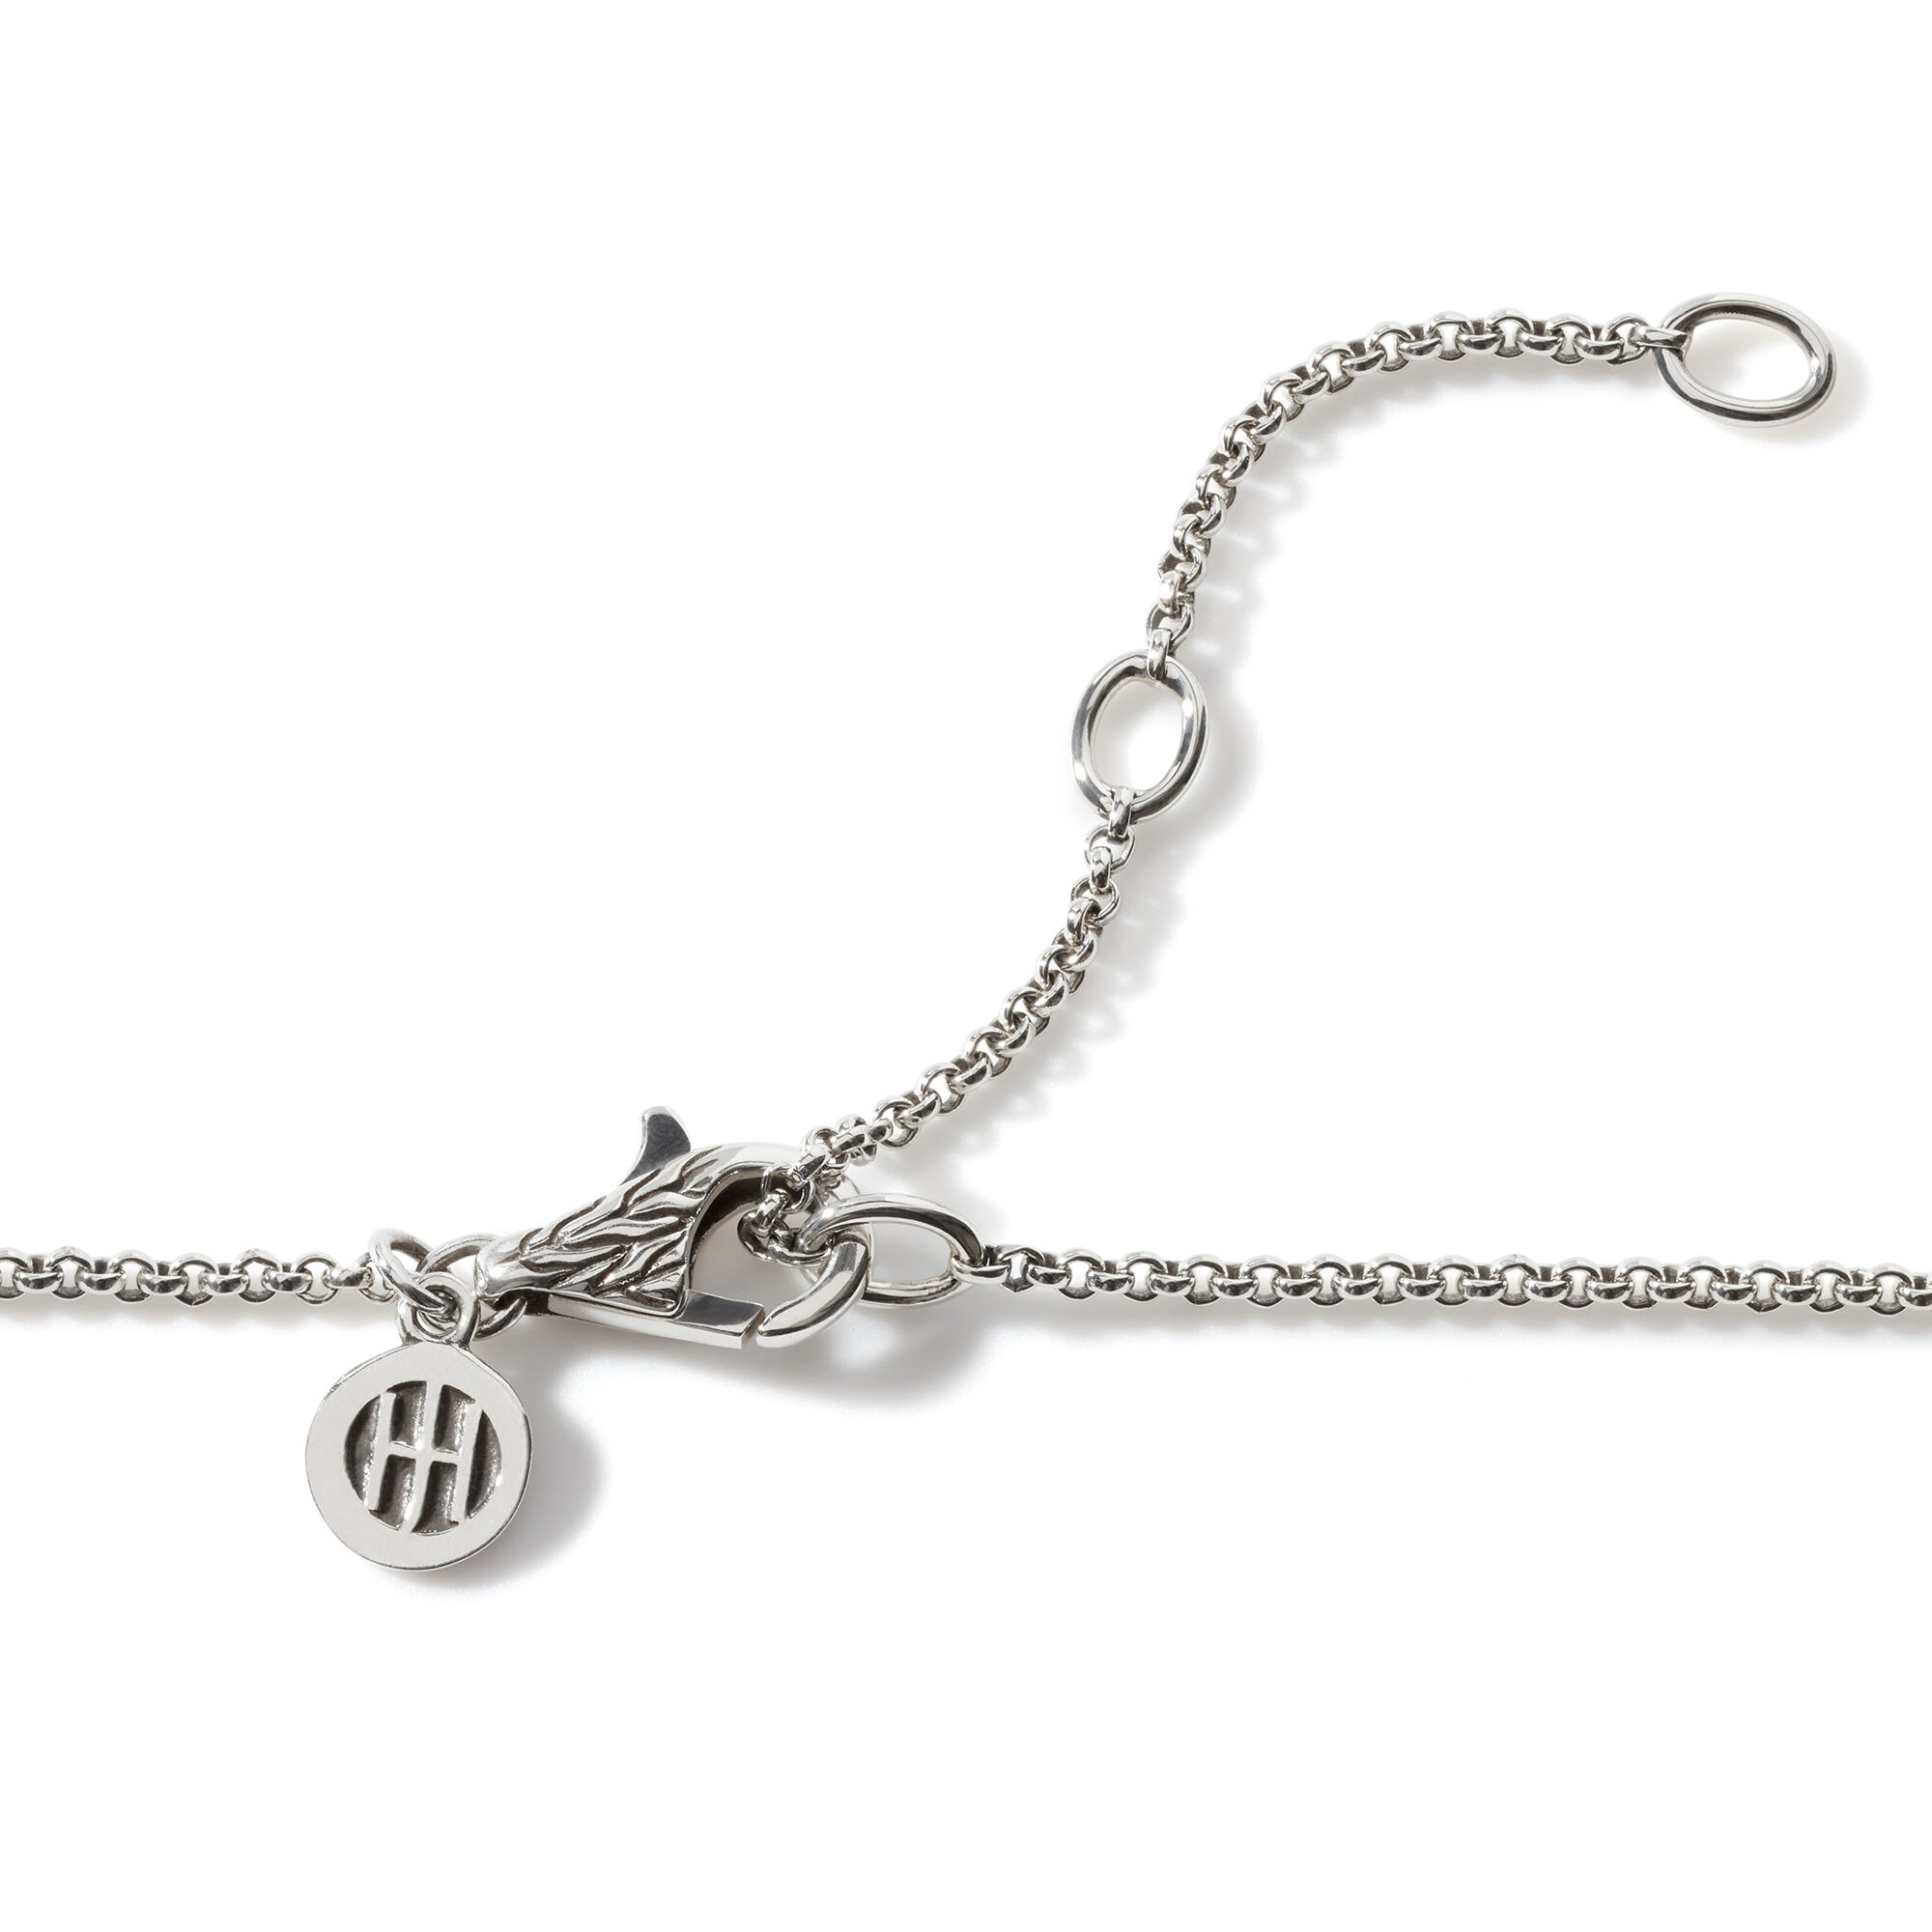 Classic Chain Heart Pendant Necklace in Silver, , large